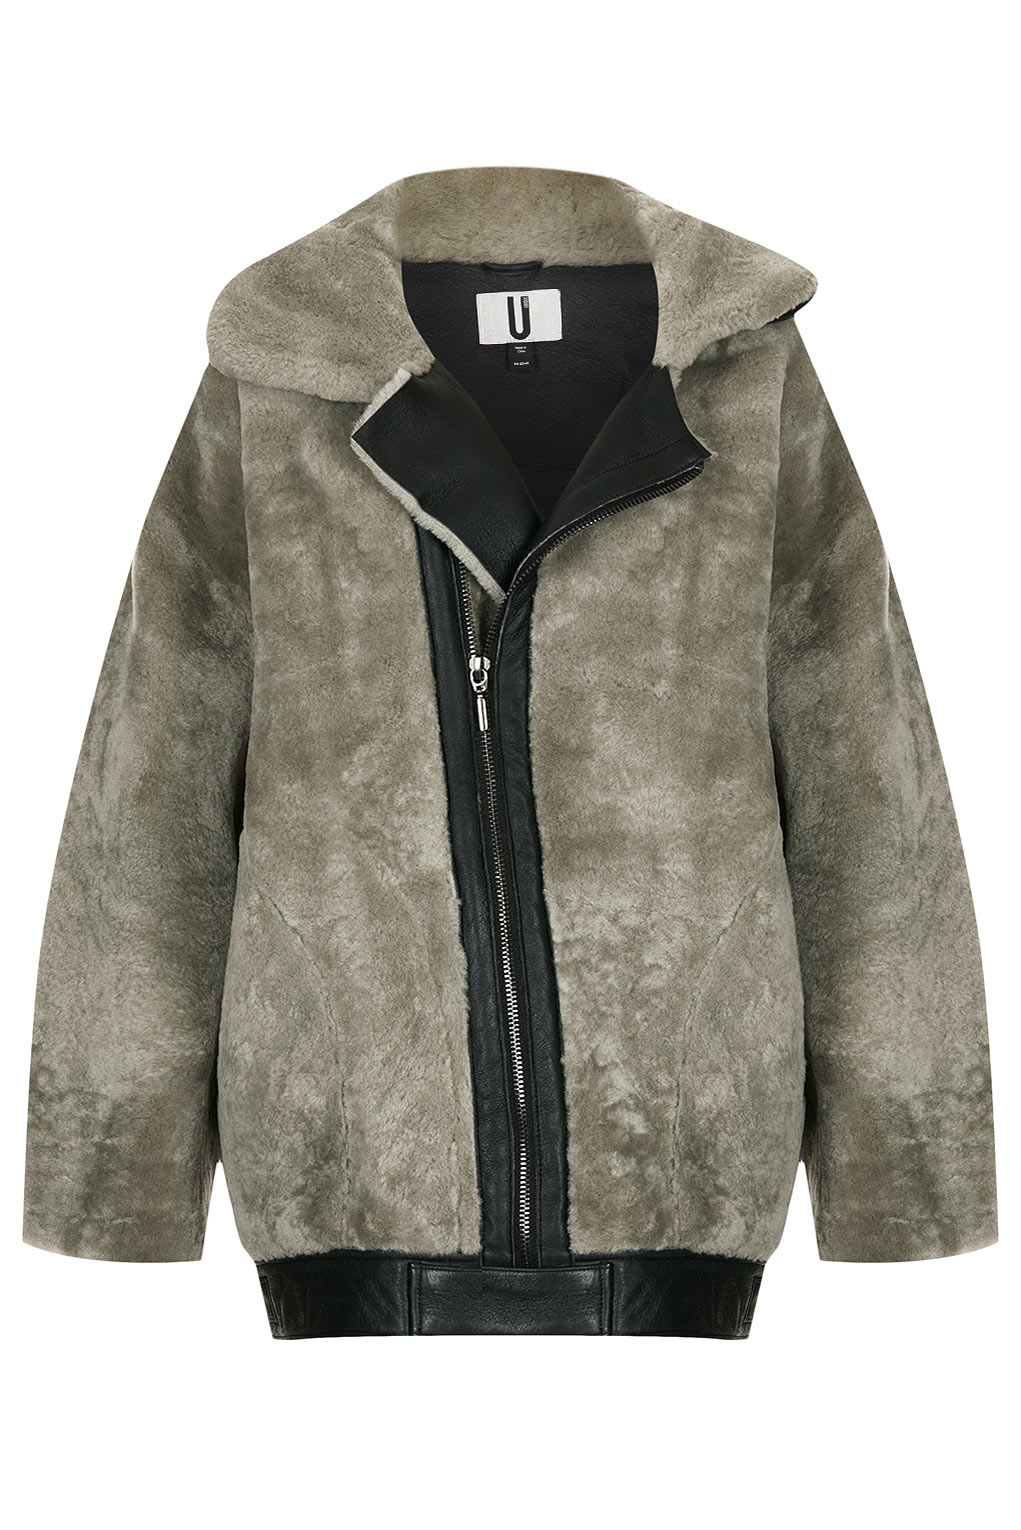 Topshop Shearling Seam Bomber Jacket By Unique in Gray | Lyst